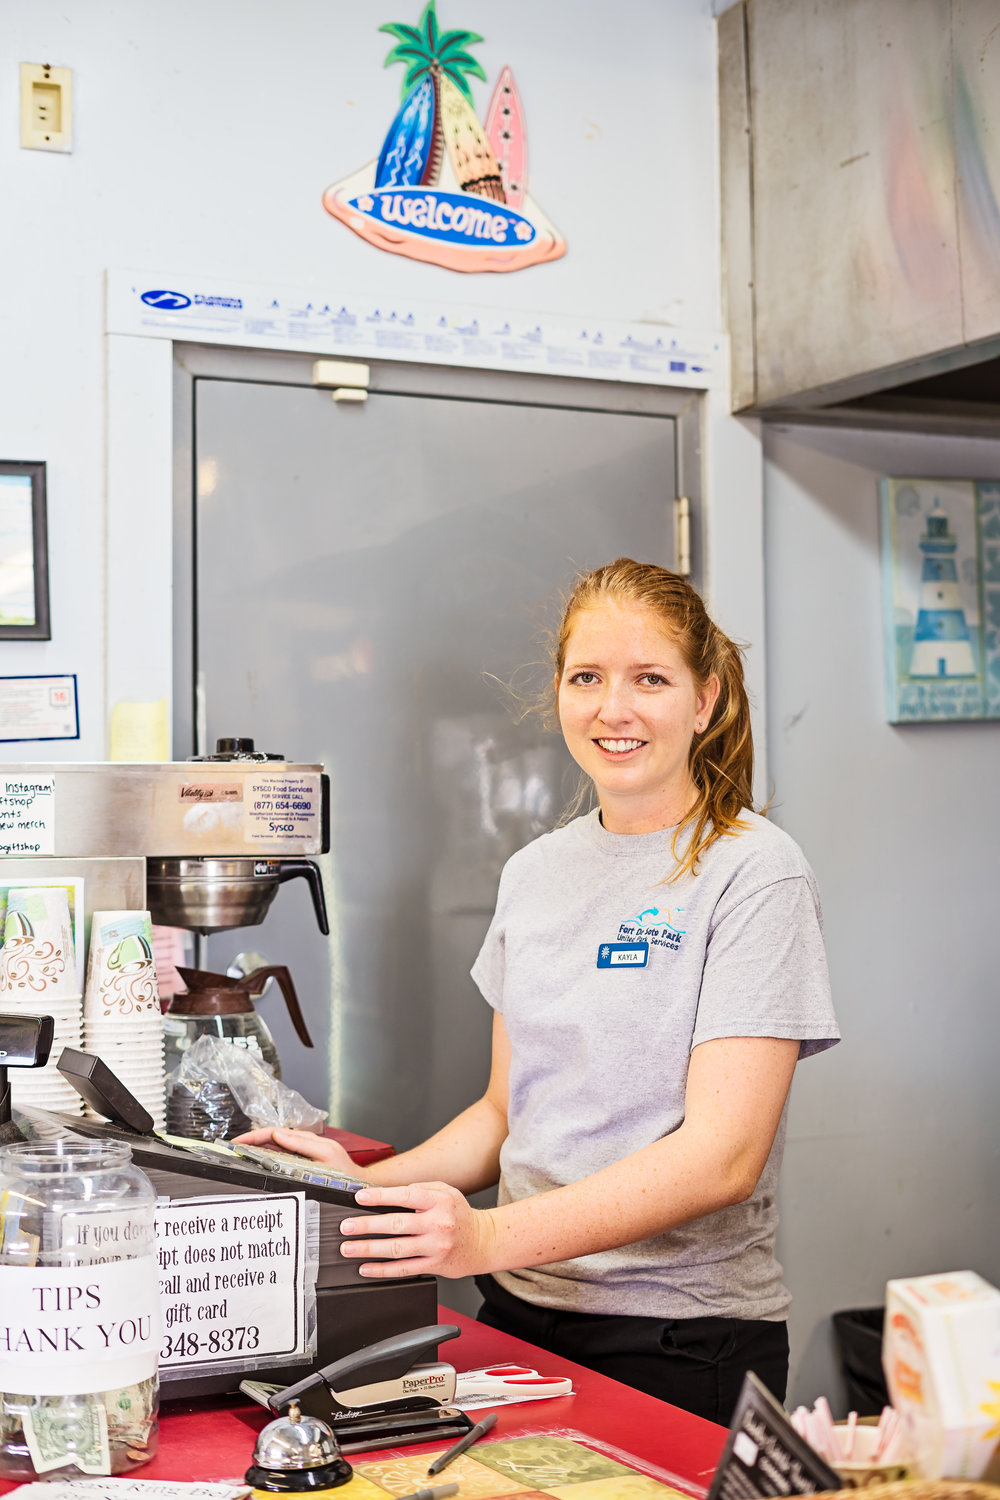 The Bay Pier also includes a small bait and tackle shop. This shop includes a small snack area as well as other items you may need for your day at the pier or beach. Kayla Burrows has worked at the shop for the past 8 years. She has a wealth of knowledge on the local fish in the area. It is a family affair as her mother is the manager at the gift shop.